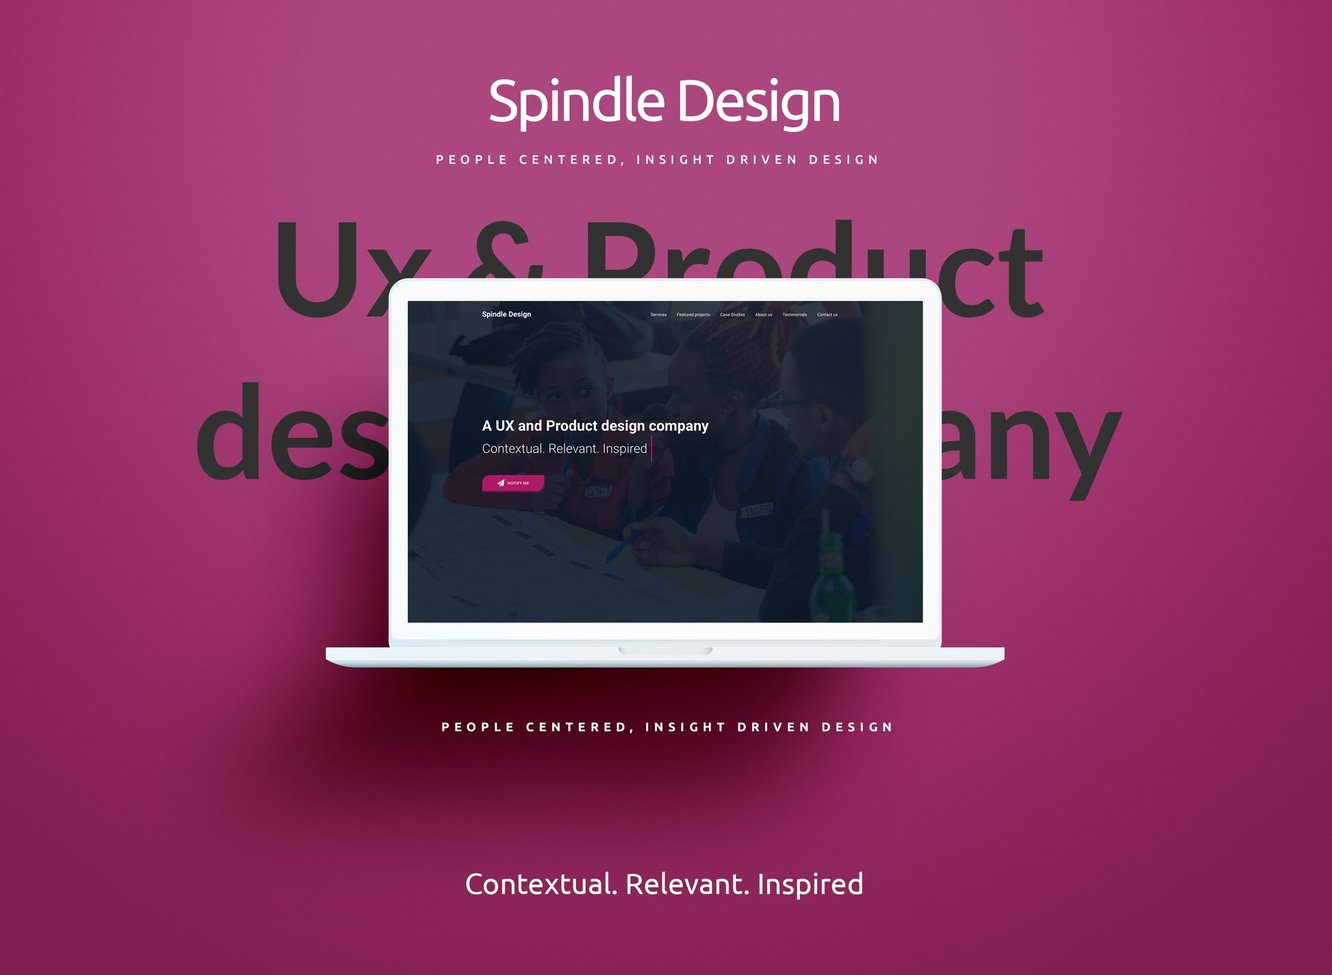 Spindle Design